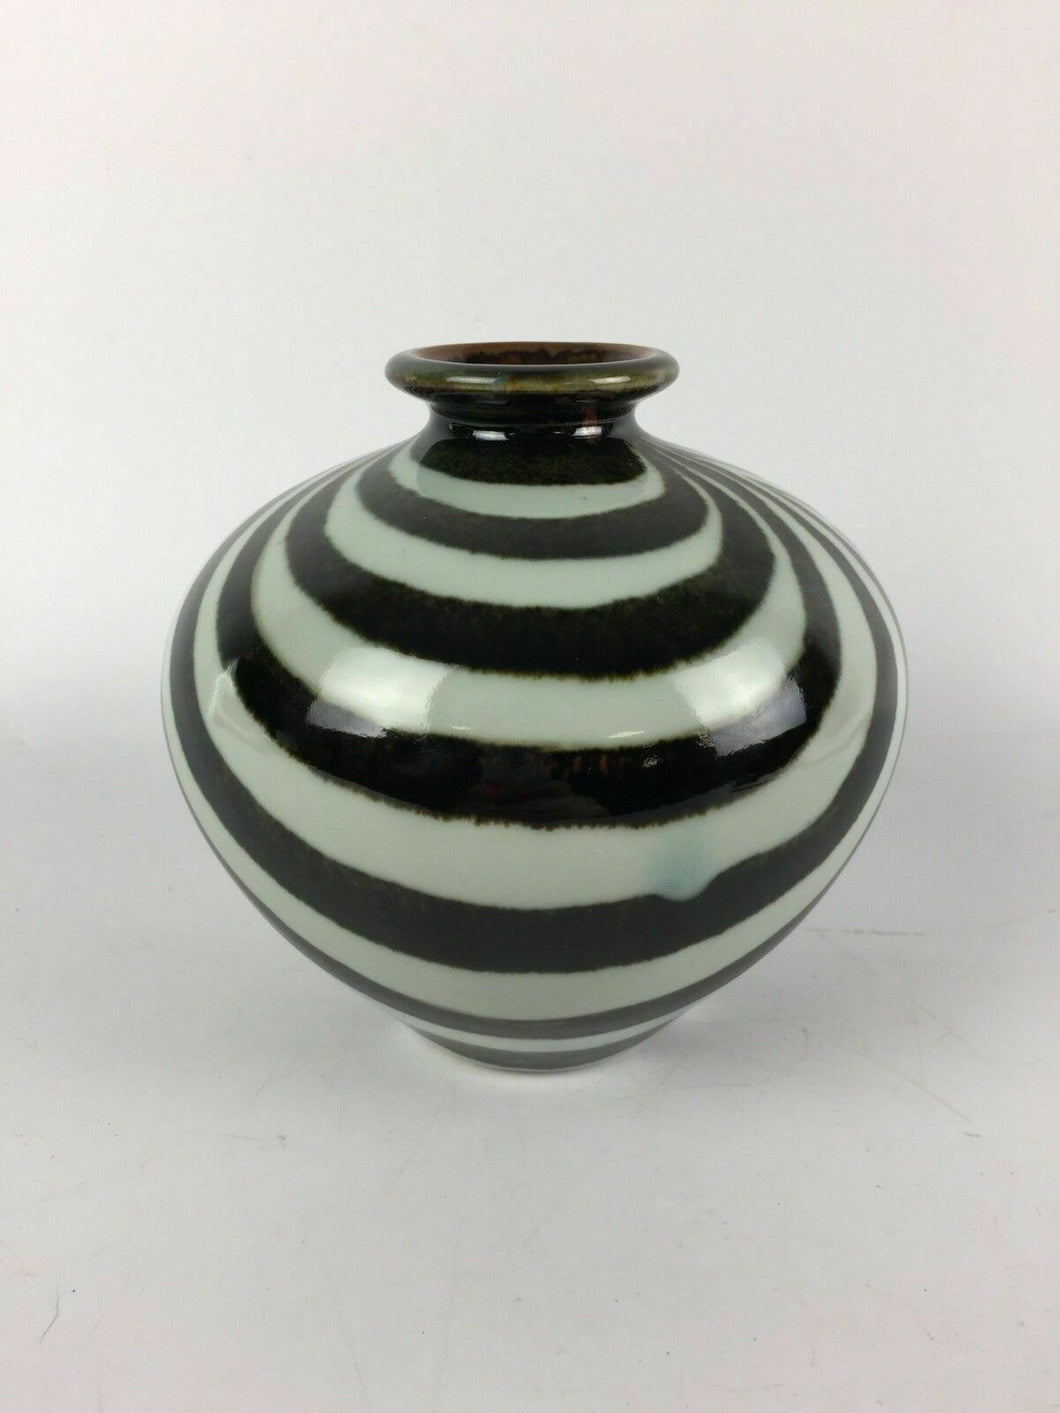 Small Decorative Zebra Print Vase - lot 1997